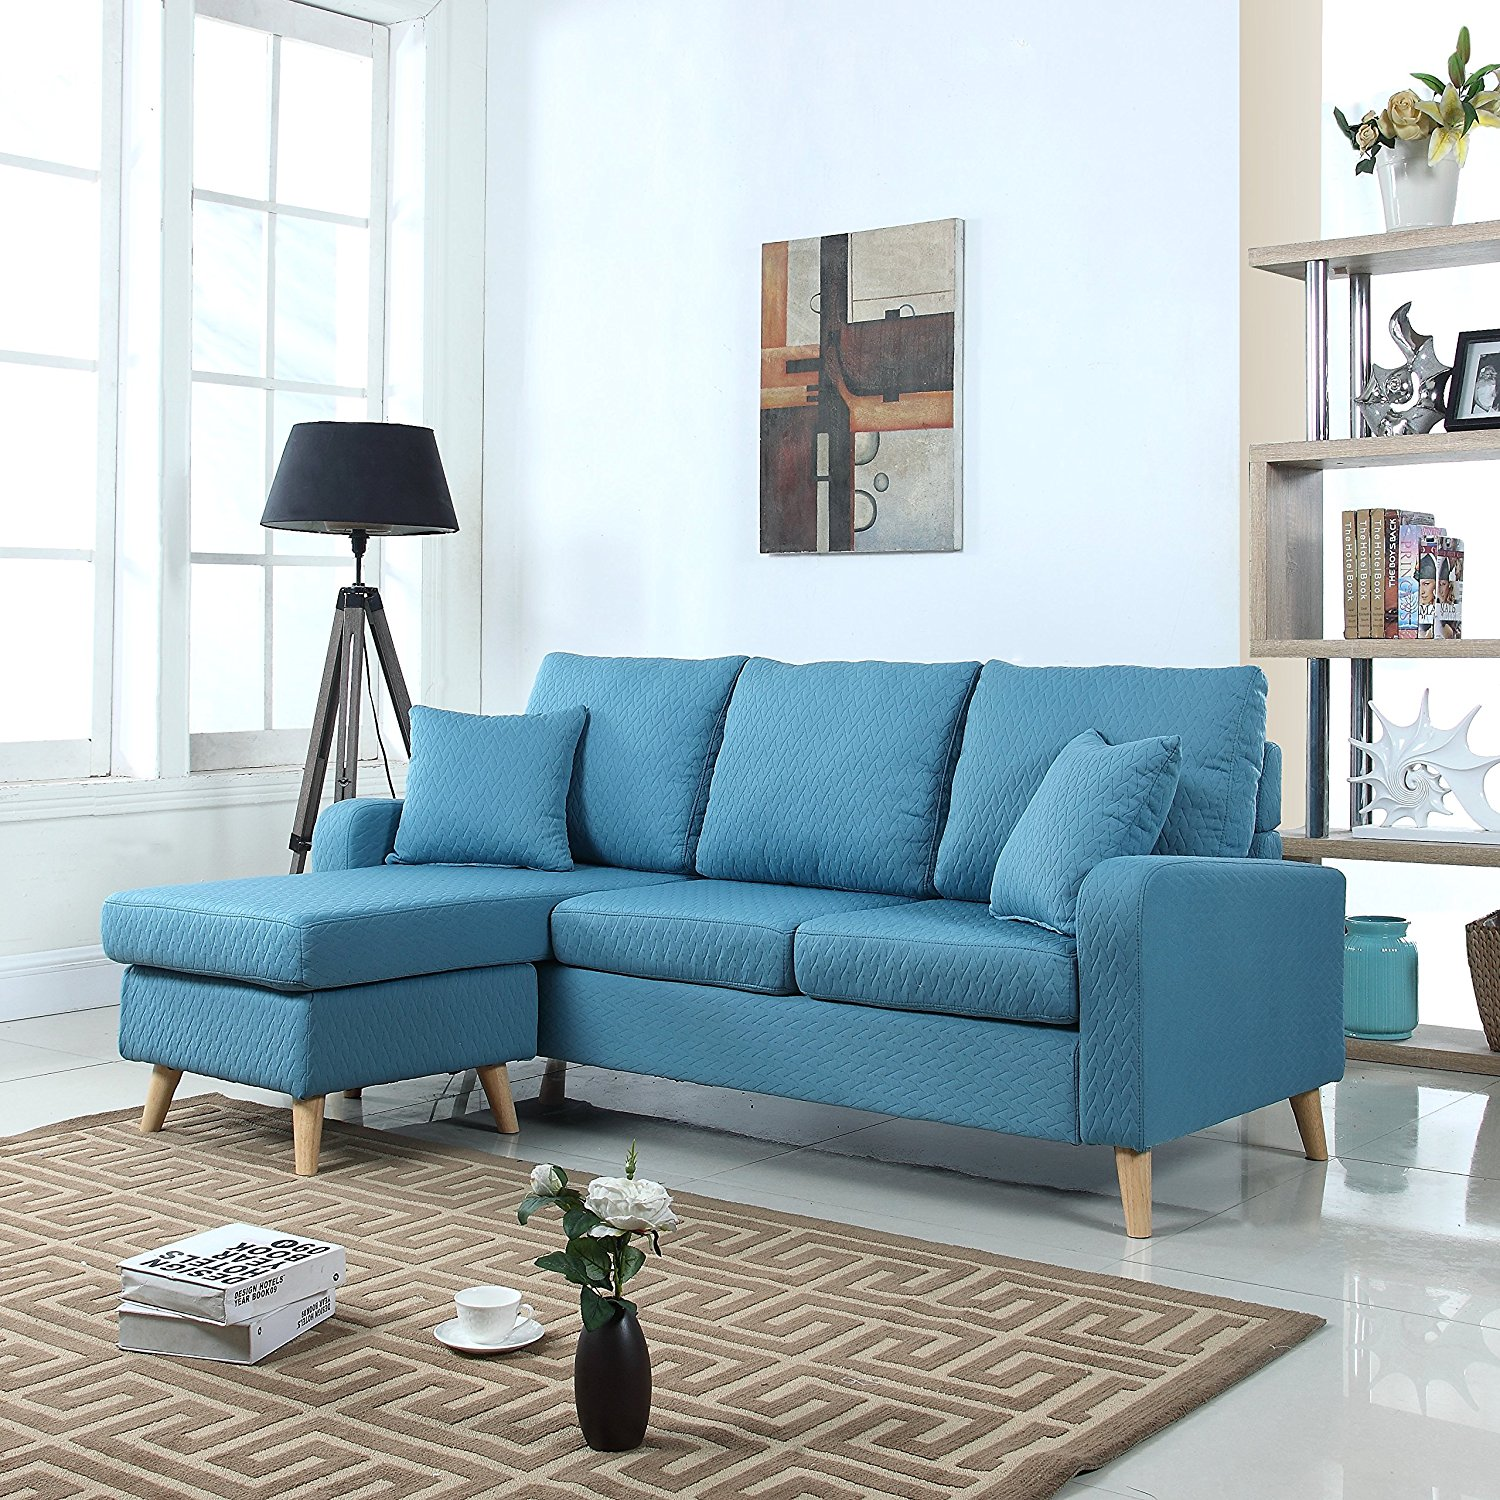 skybluesectional5 : blue sectional sofa with chaise - Sectionals, Sofas & Couches